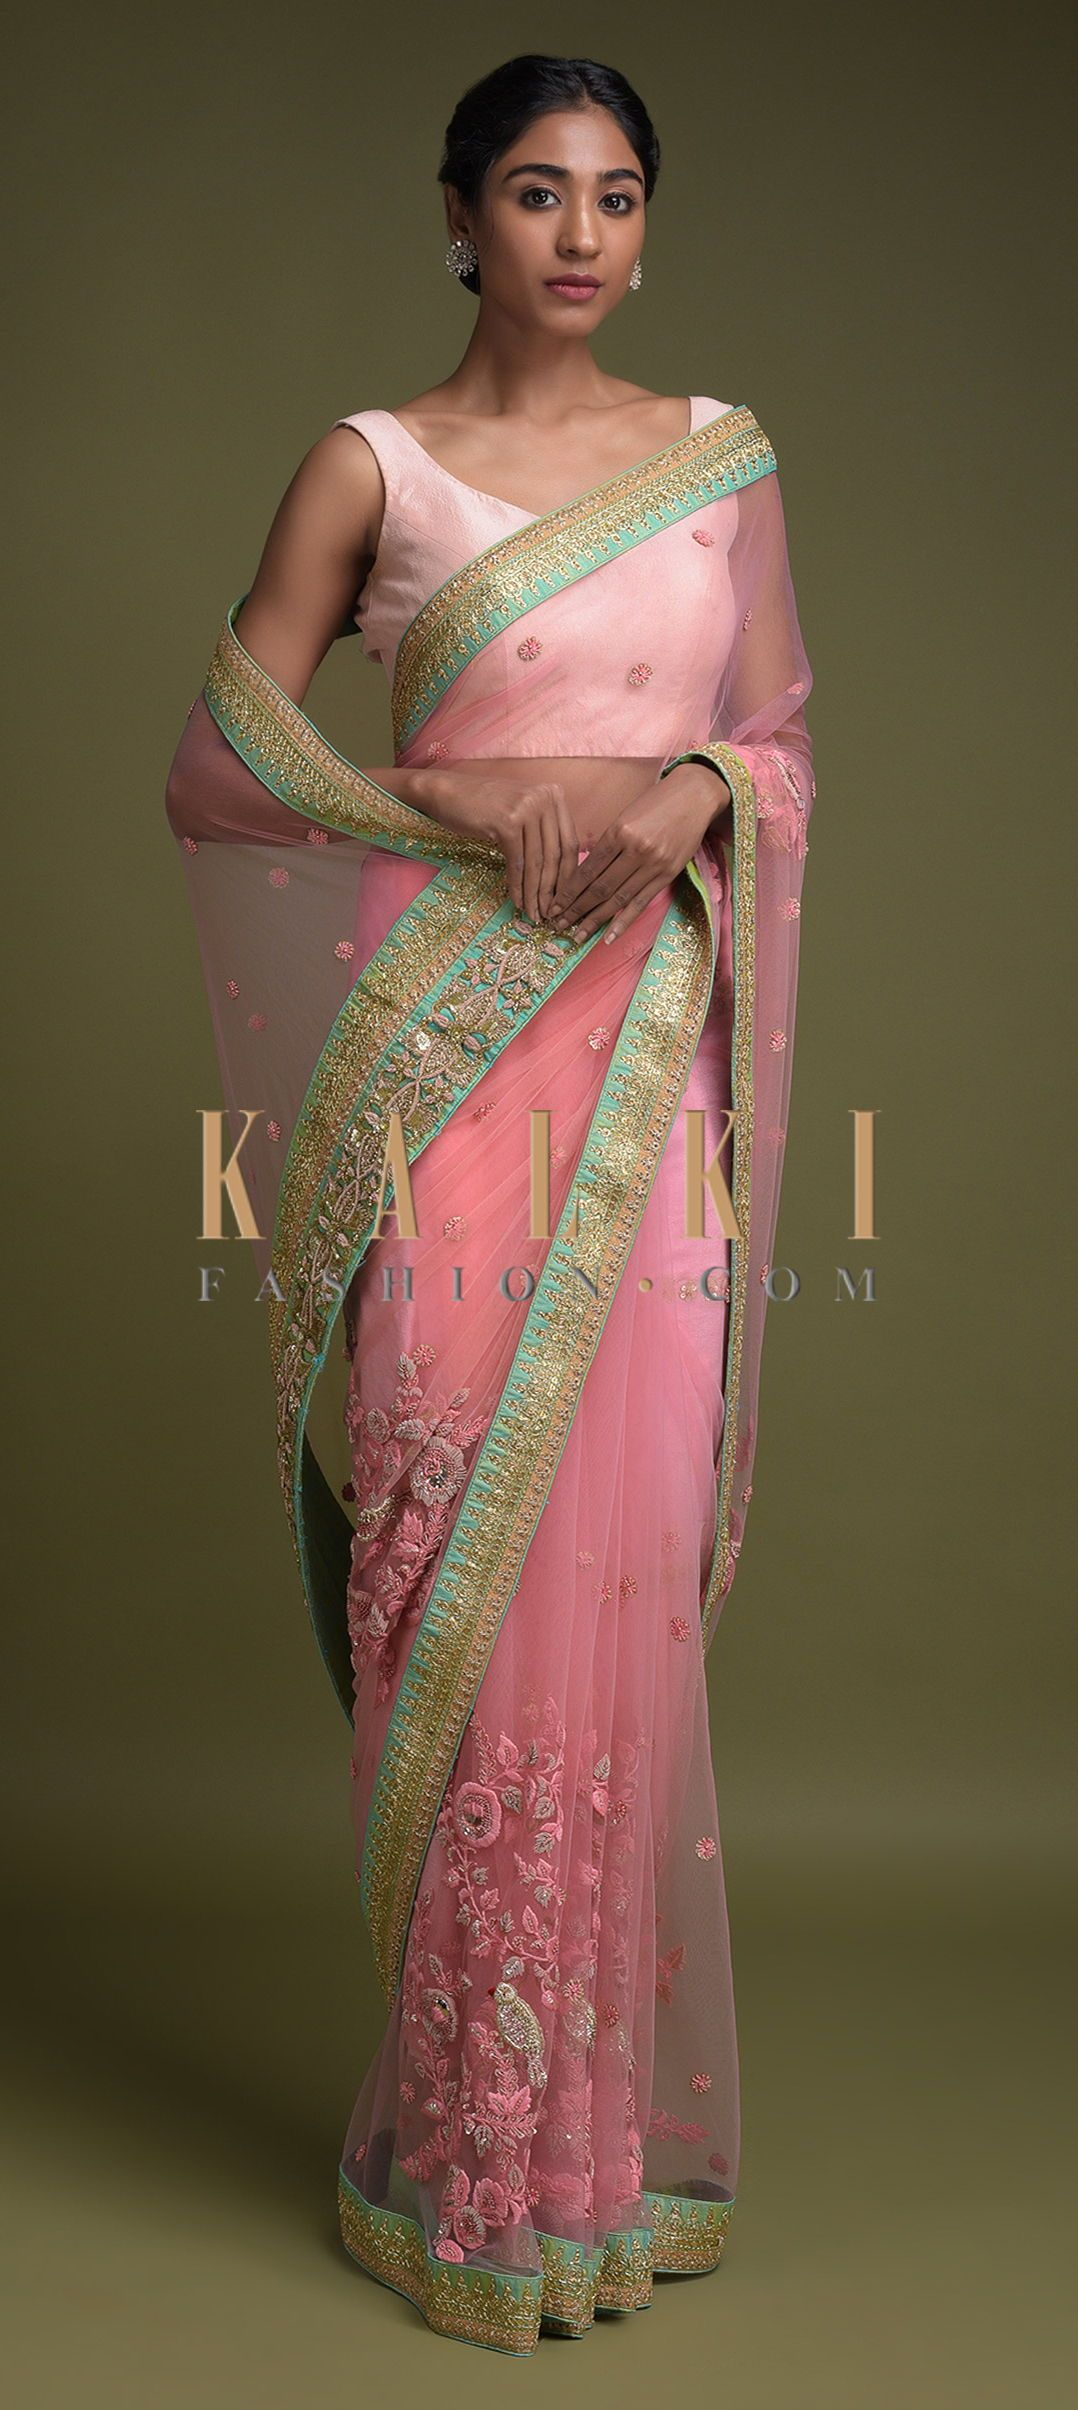 Rose Pink Saree In Net Adorned With Thread And Zardozi